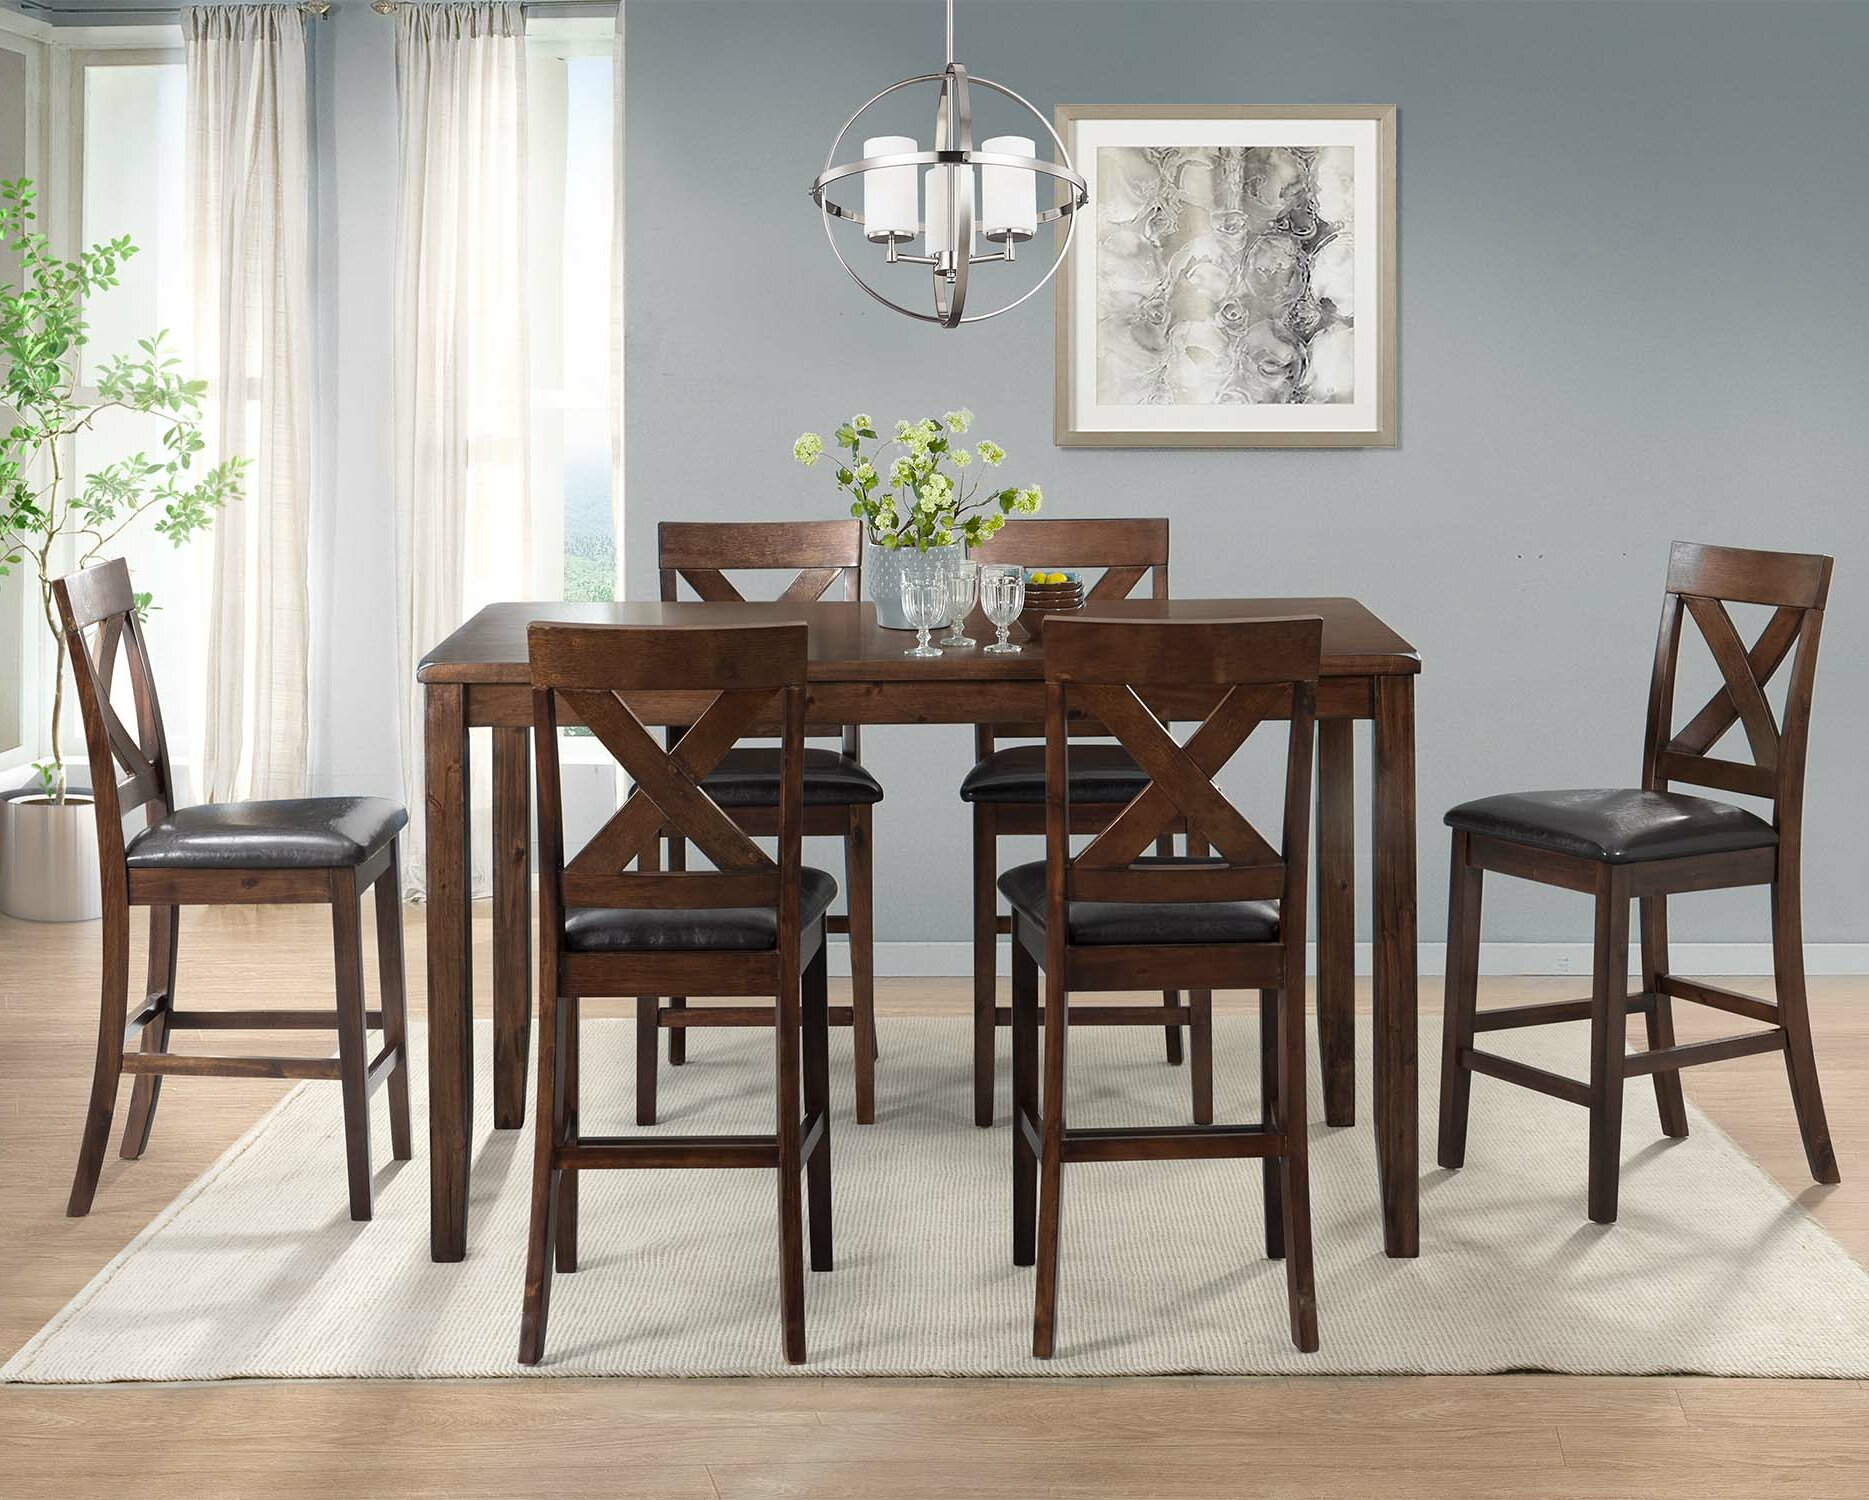 Darby Home Co Makaila 7 Piece Counter Height Dining Set U0026 Reviews | Wayfair